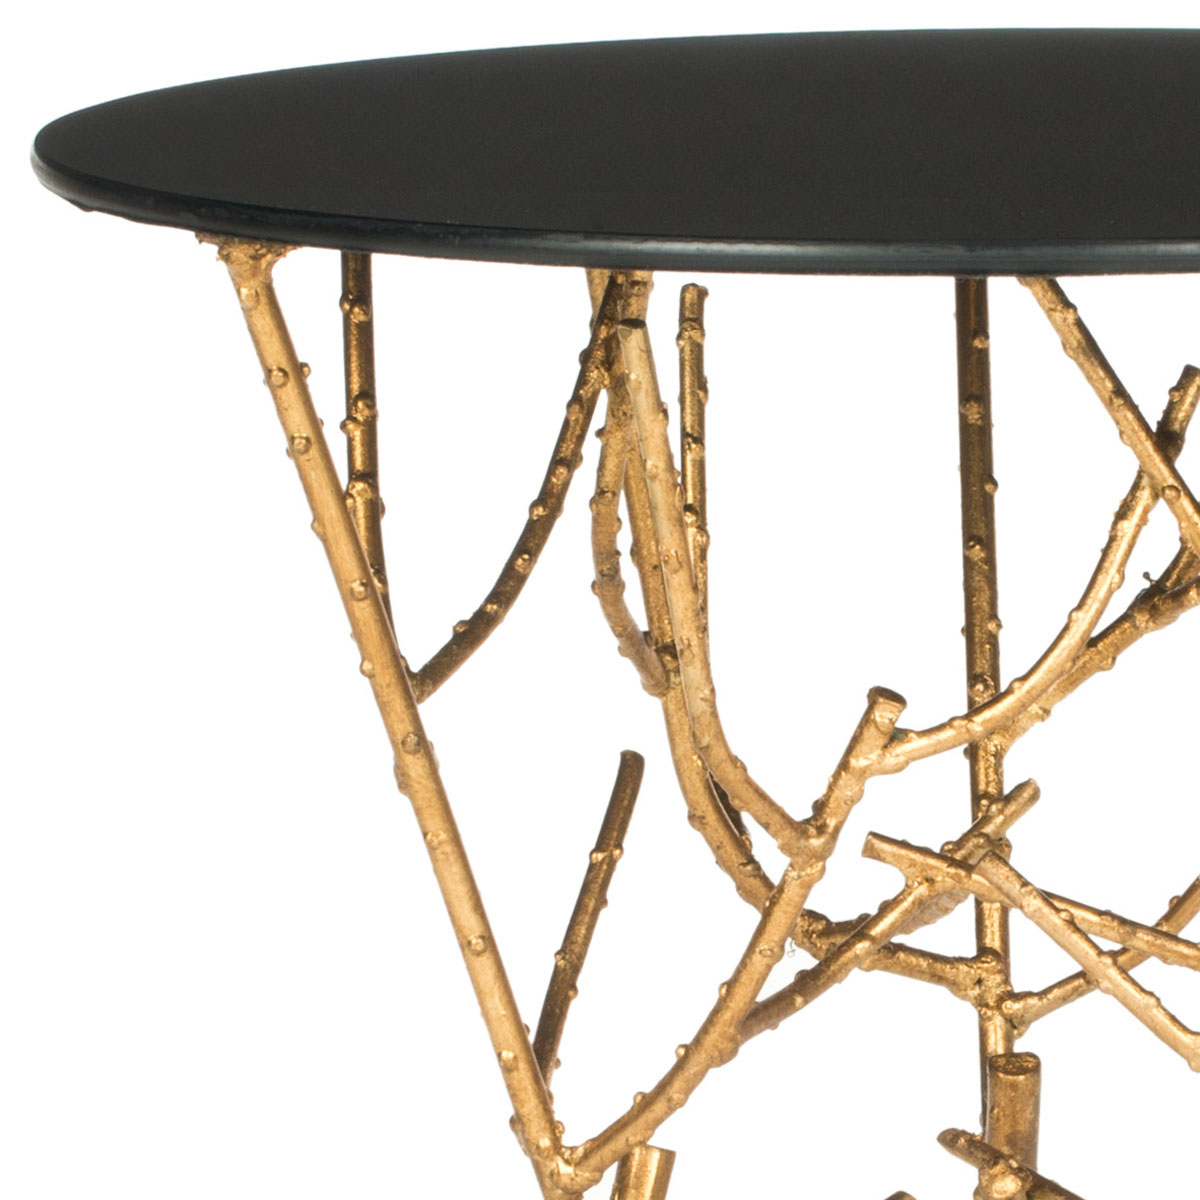 accent tables furniture safavieh detail gold table with glass top share this product seater and chairs showrooms bangalore bedside cabinets mattress box spring set cherry mission